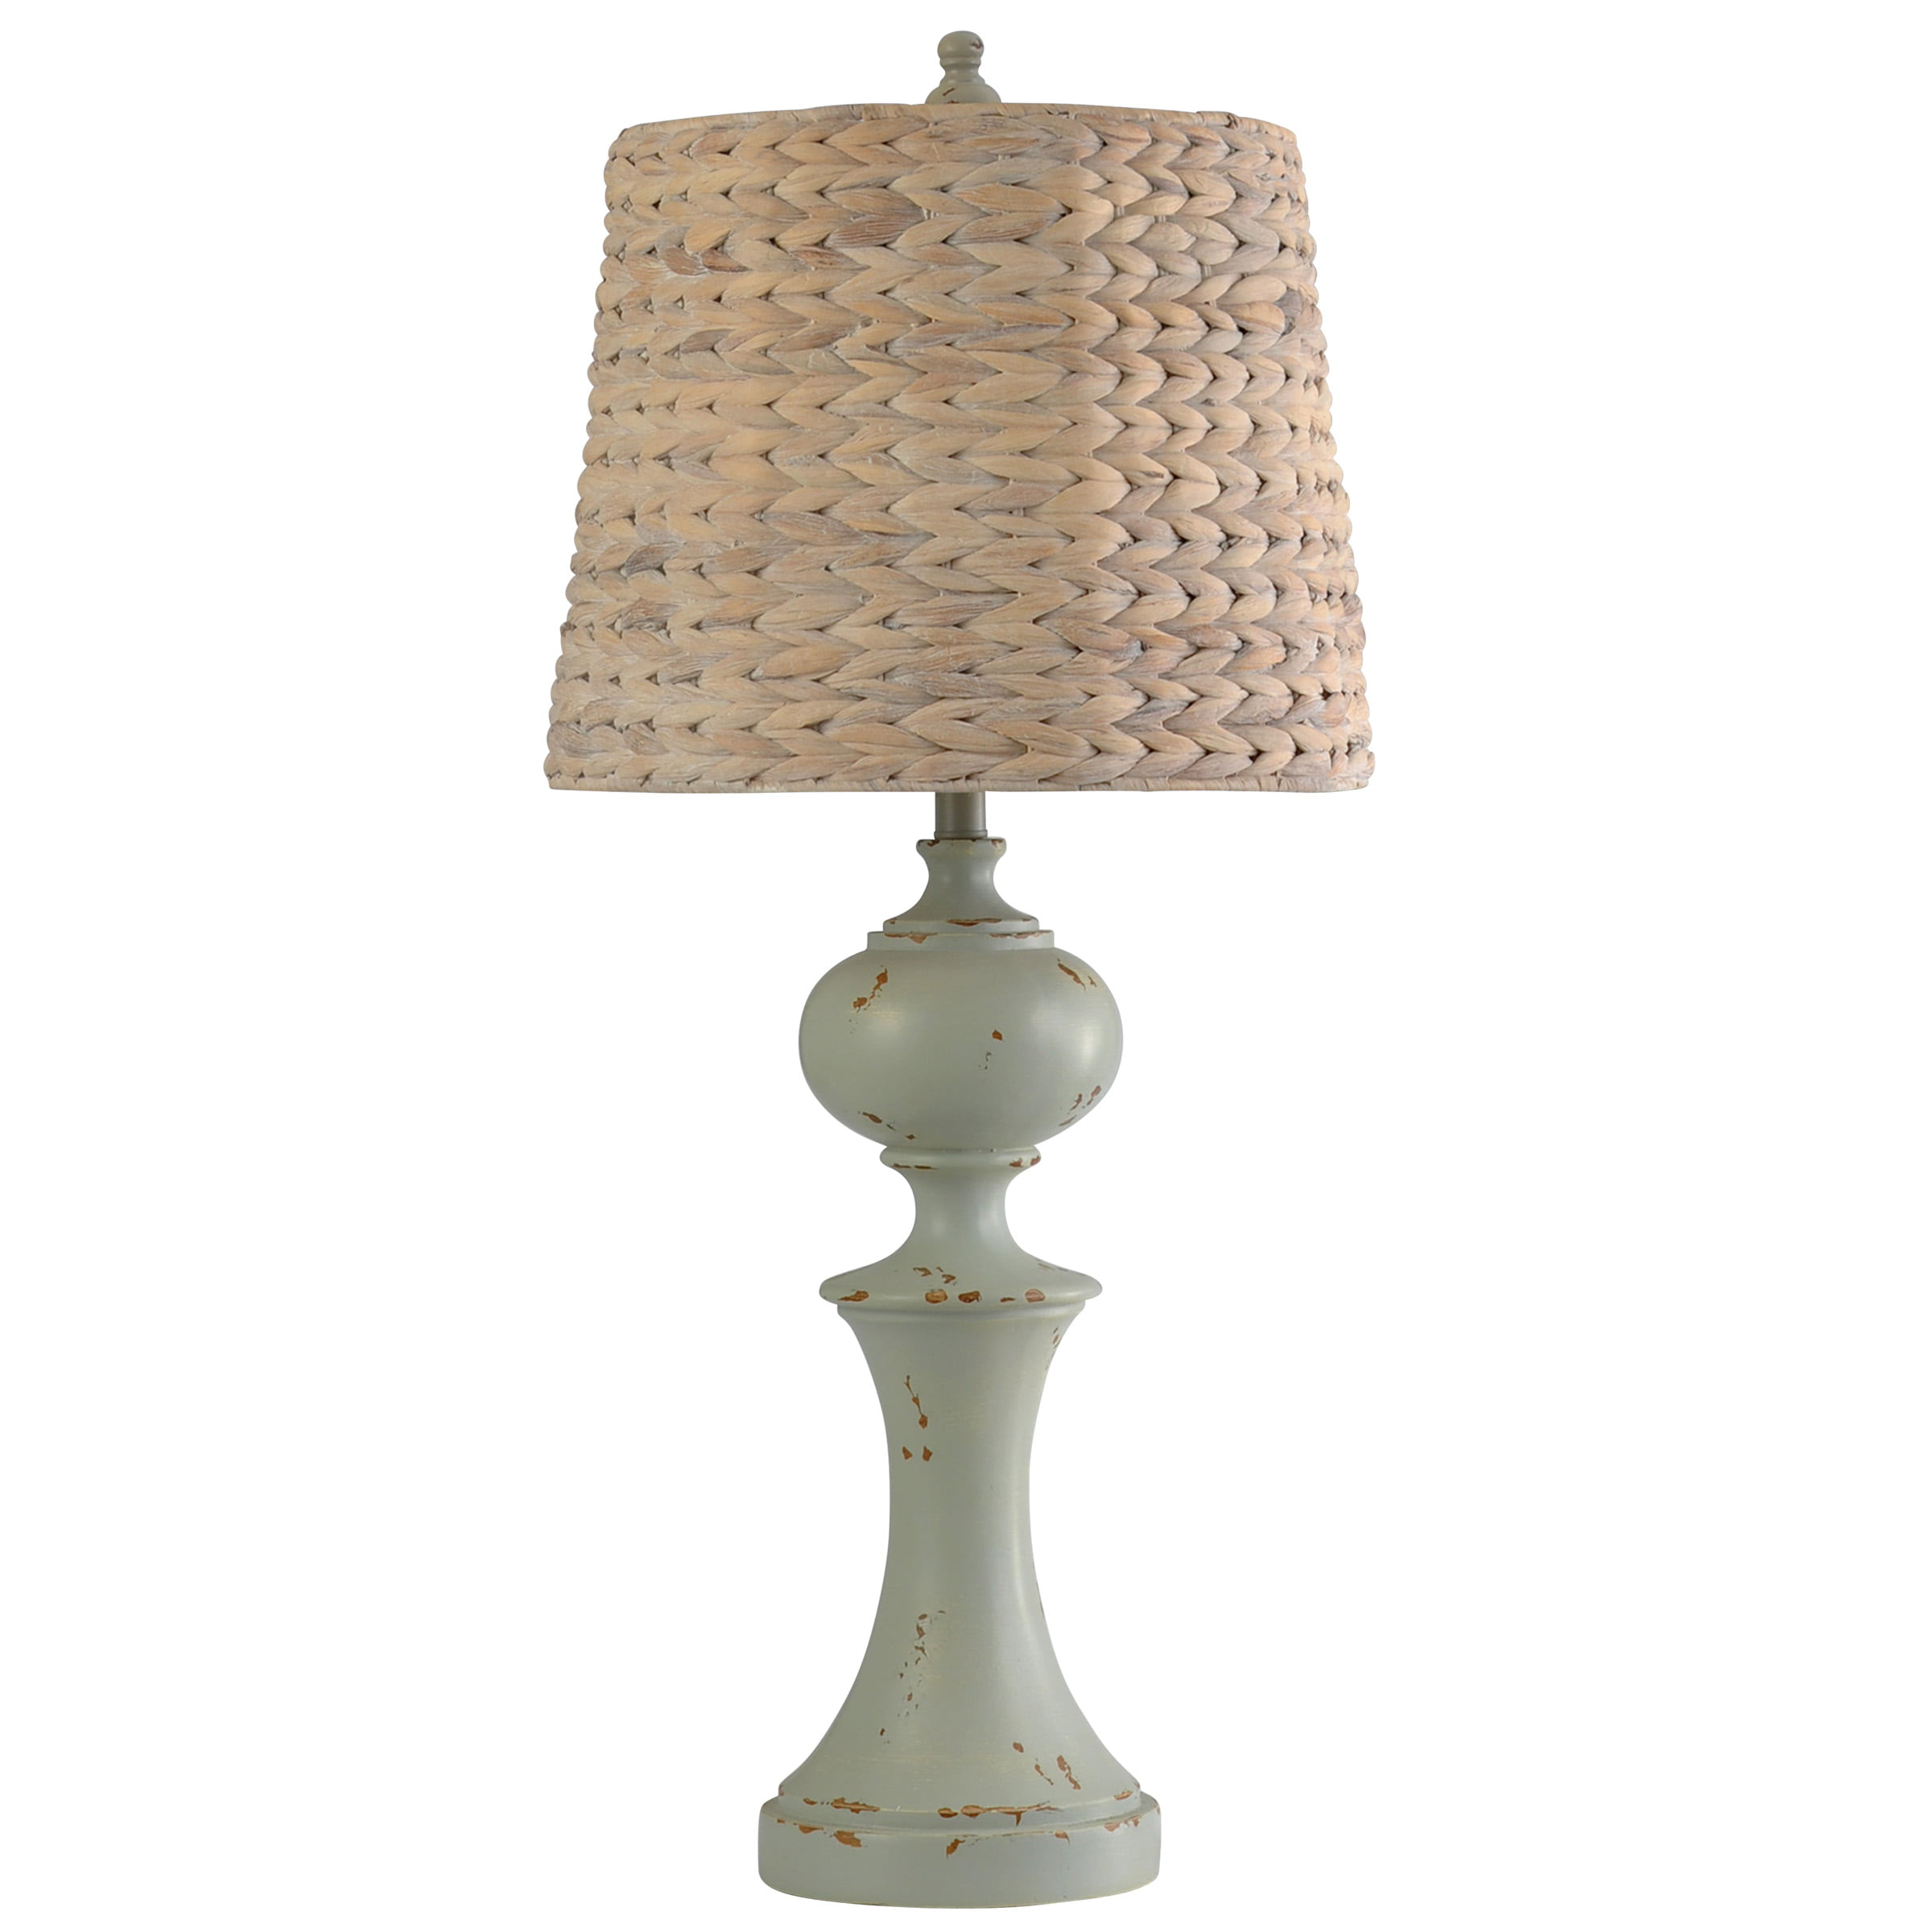 Basilica Sky - Traditional Table Lamp - Natural Seagrass ...